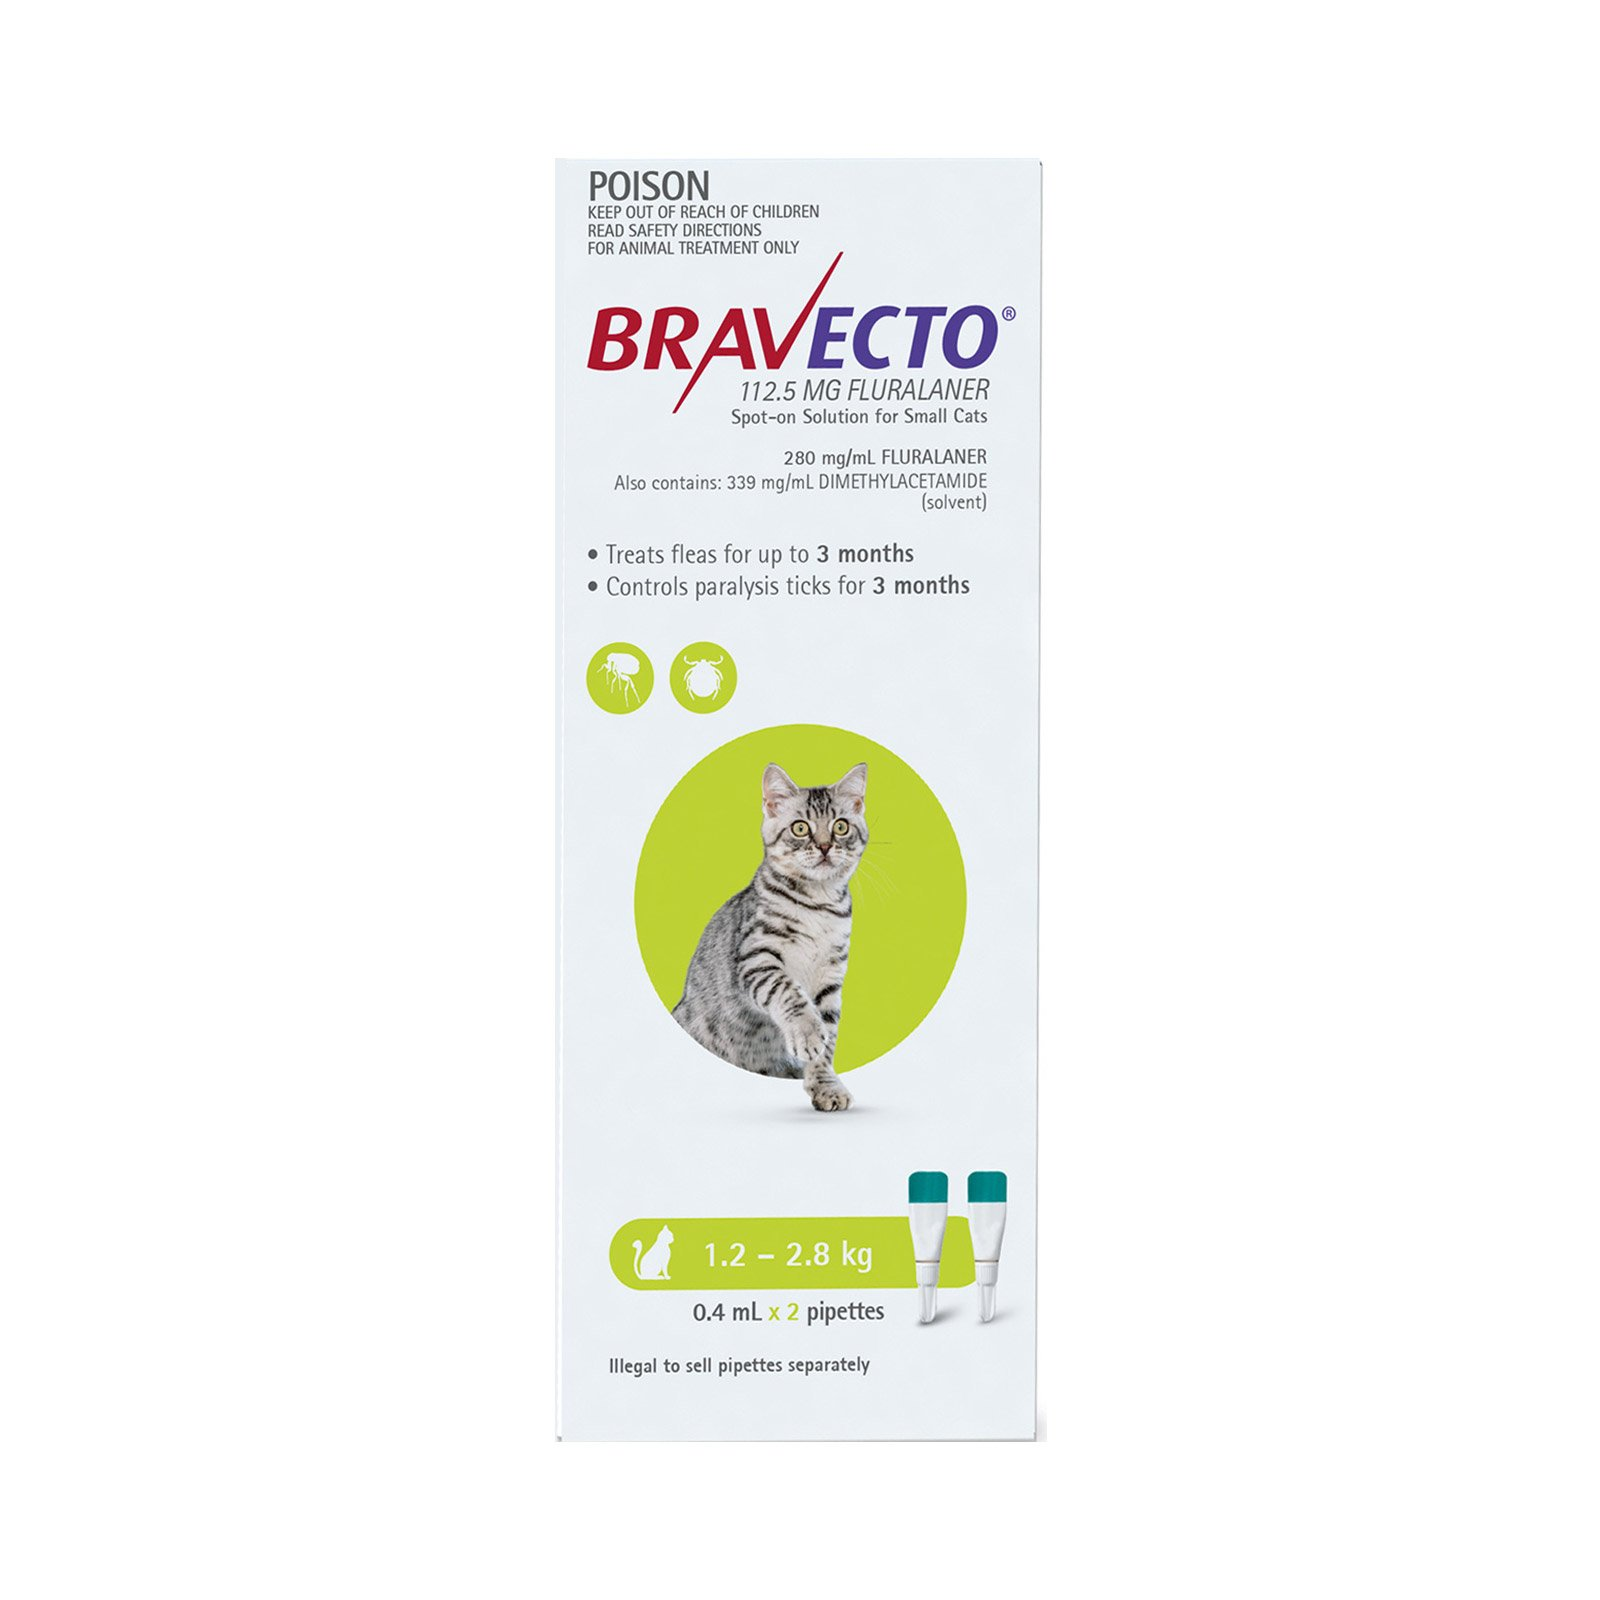 Bravecto Spot On For Small Cats (1.2 - 2.8 Kg) Light Green 2 Pipettes